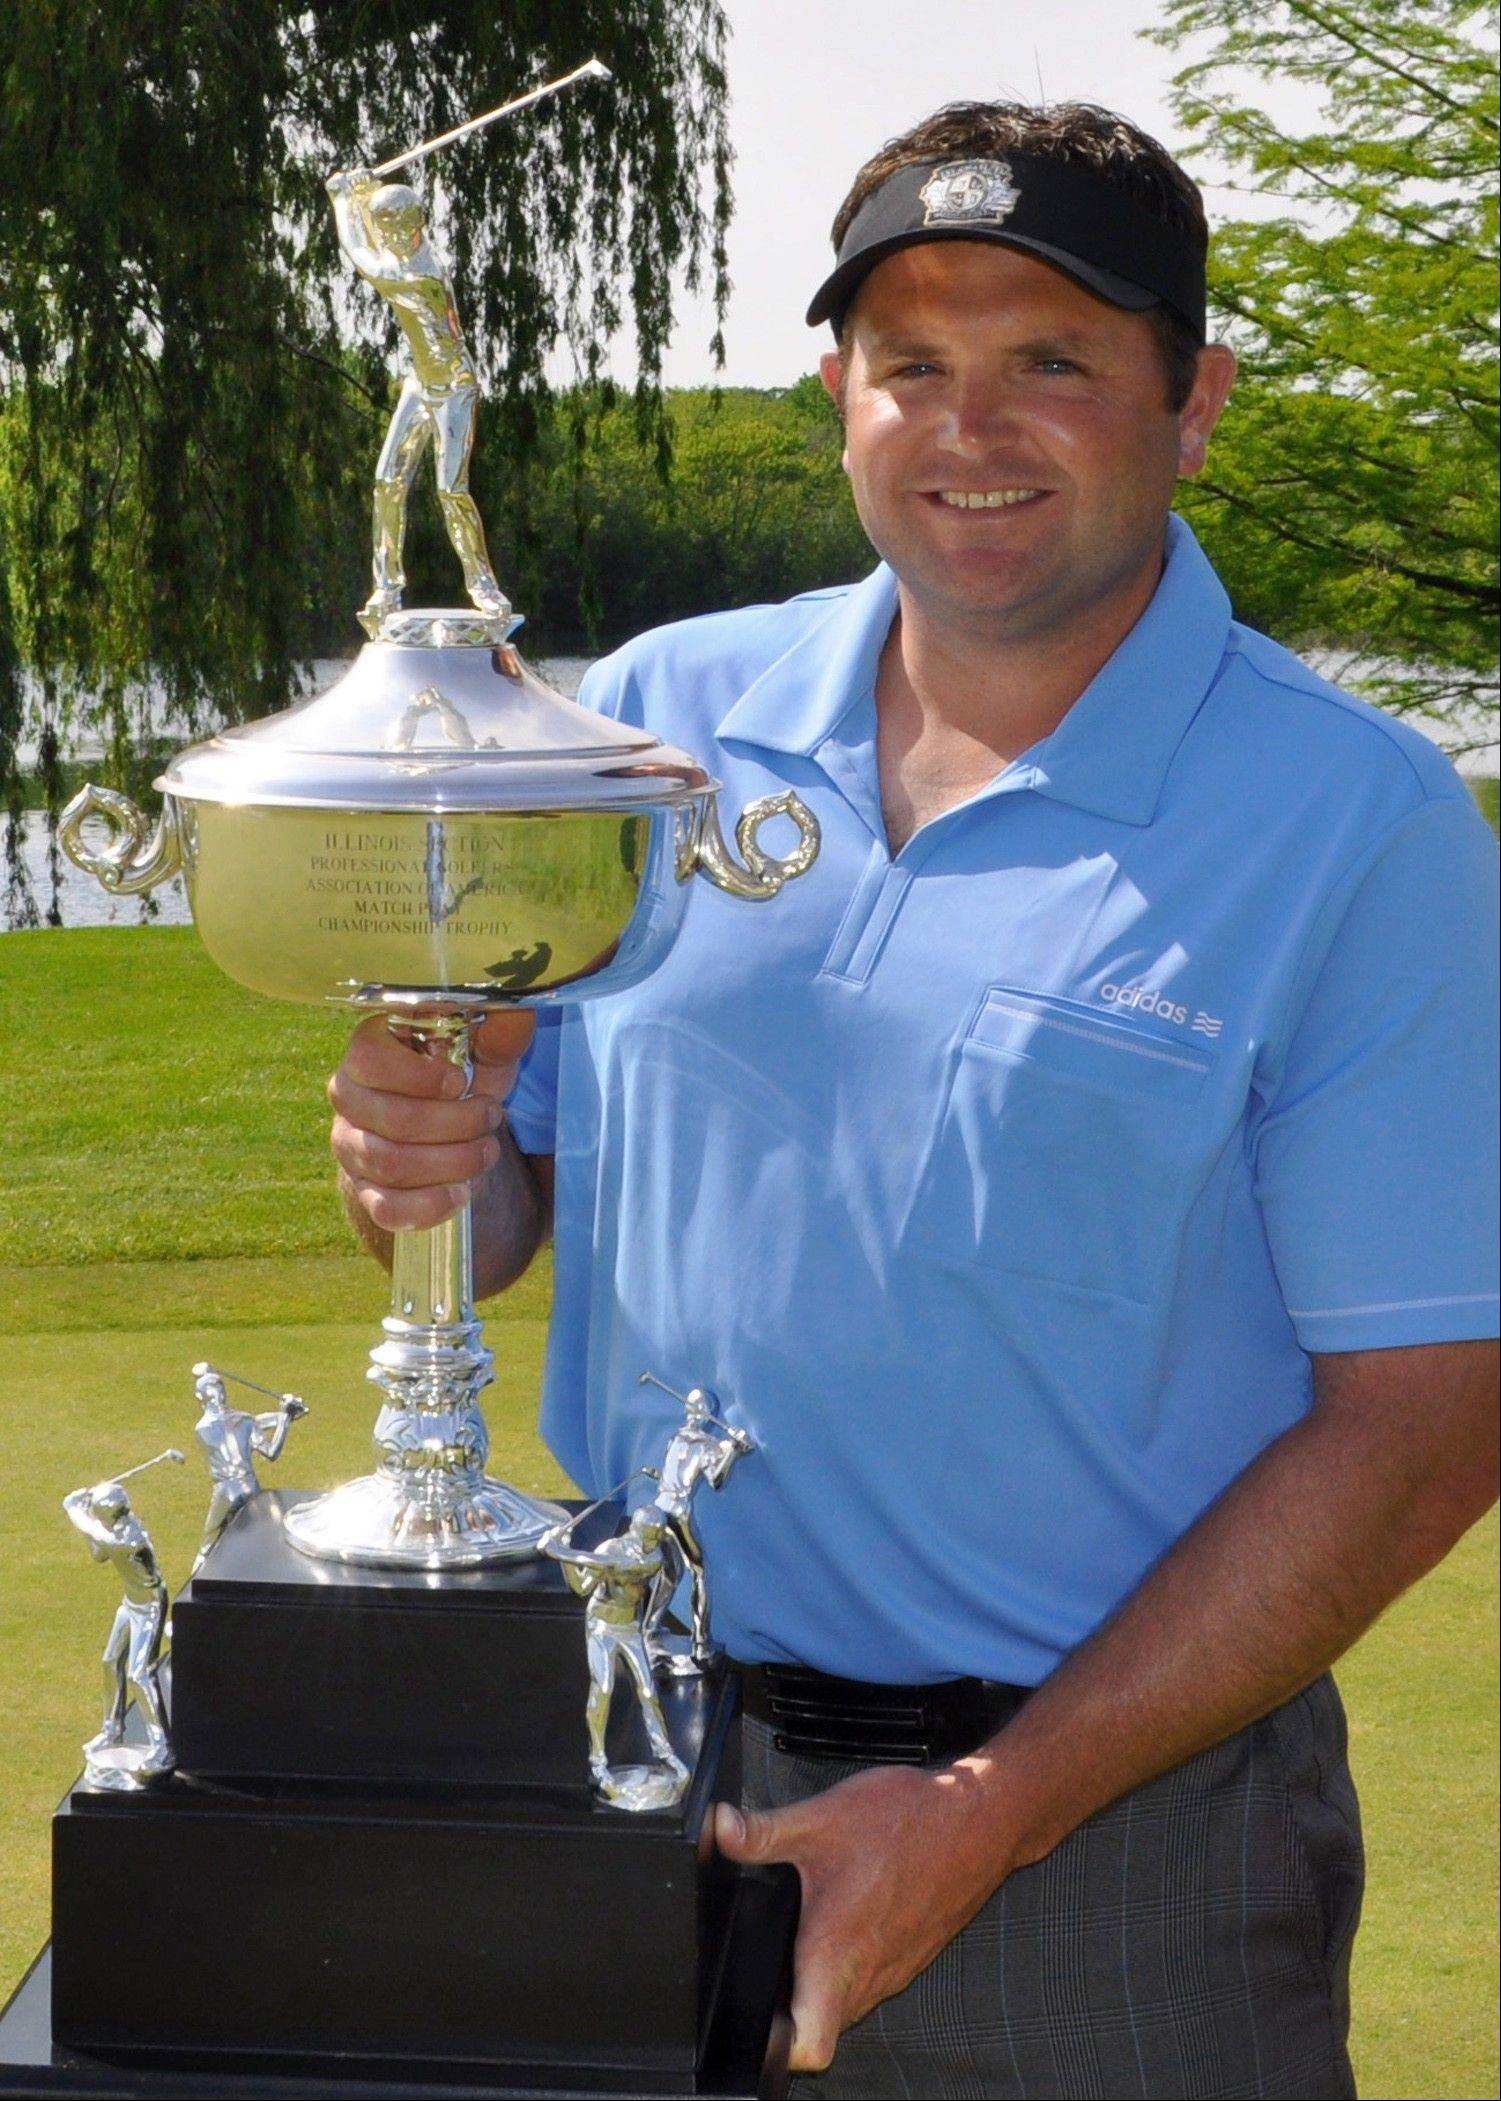 Curtis Malm, PGA assistant golf professional at St. Charles Country Club, captured the 61st Illinois PGA Match Play Championship trophy earlier this season at at Kemper Lakes Golf Club.